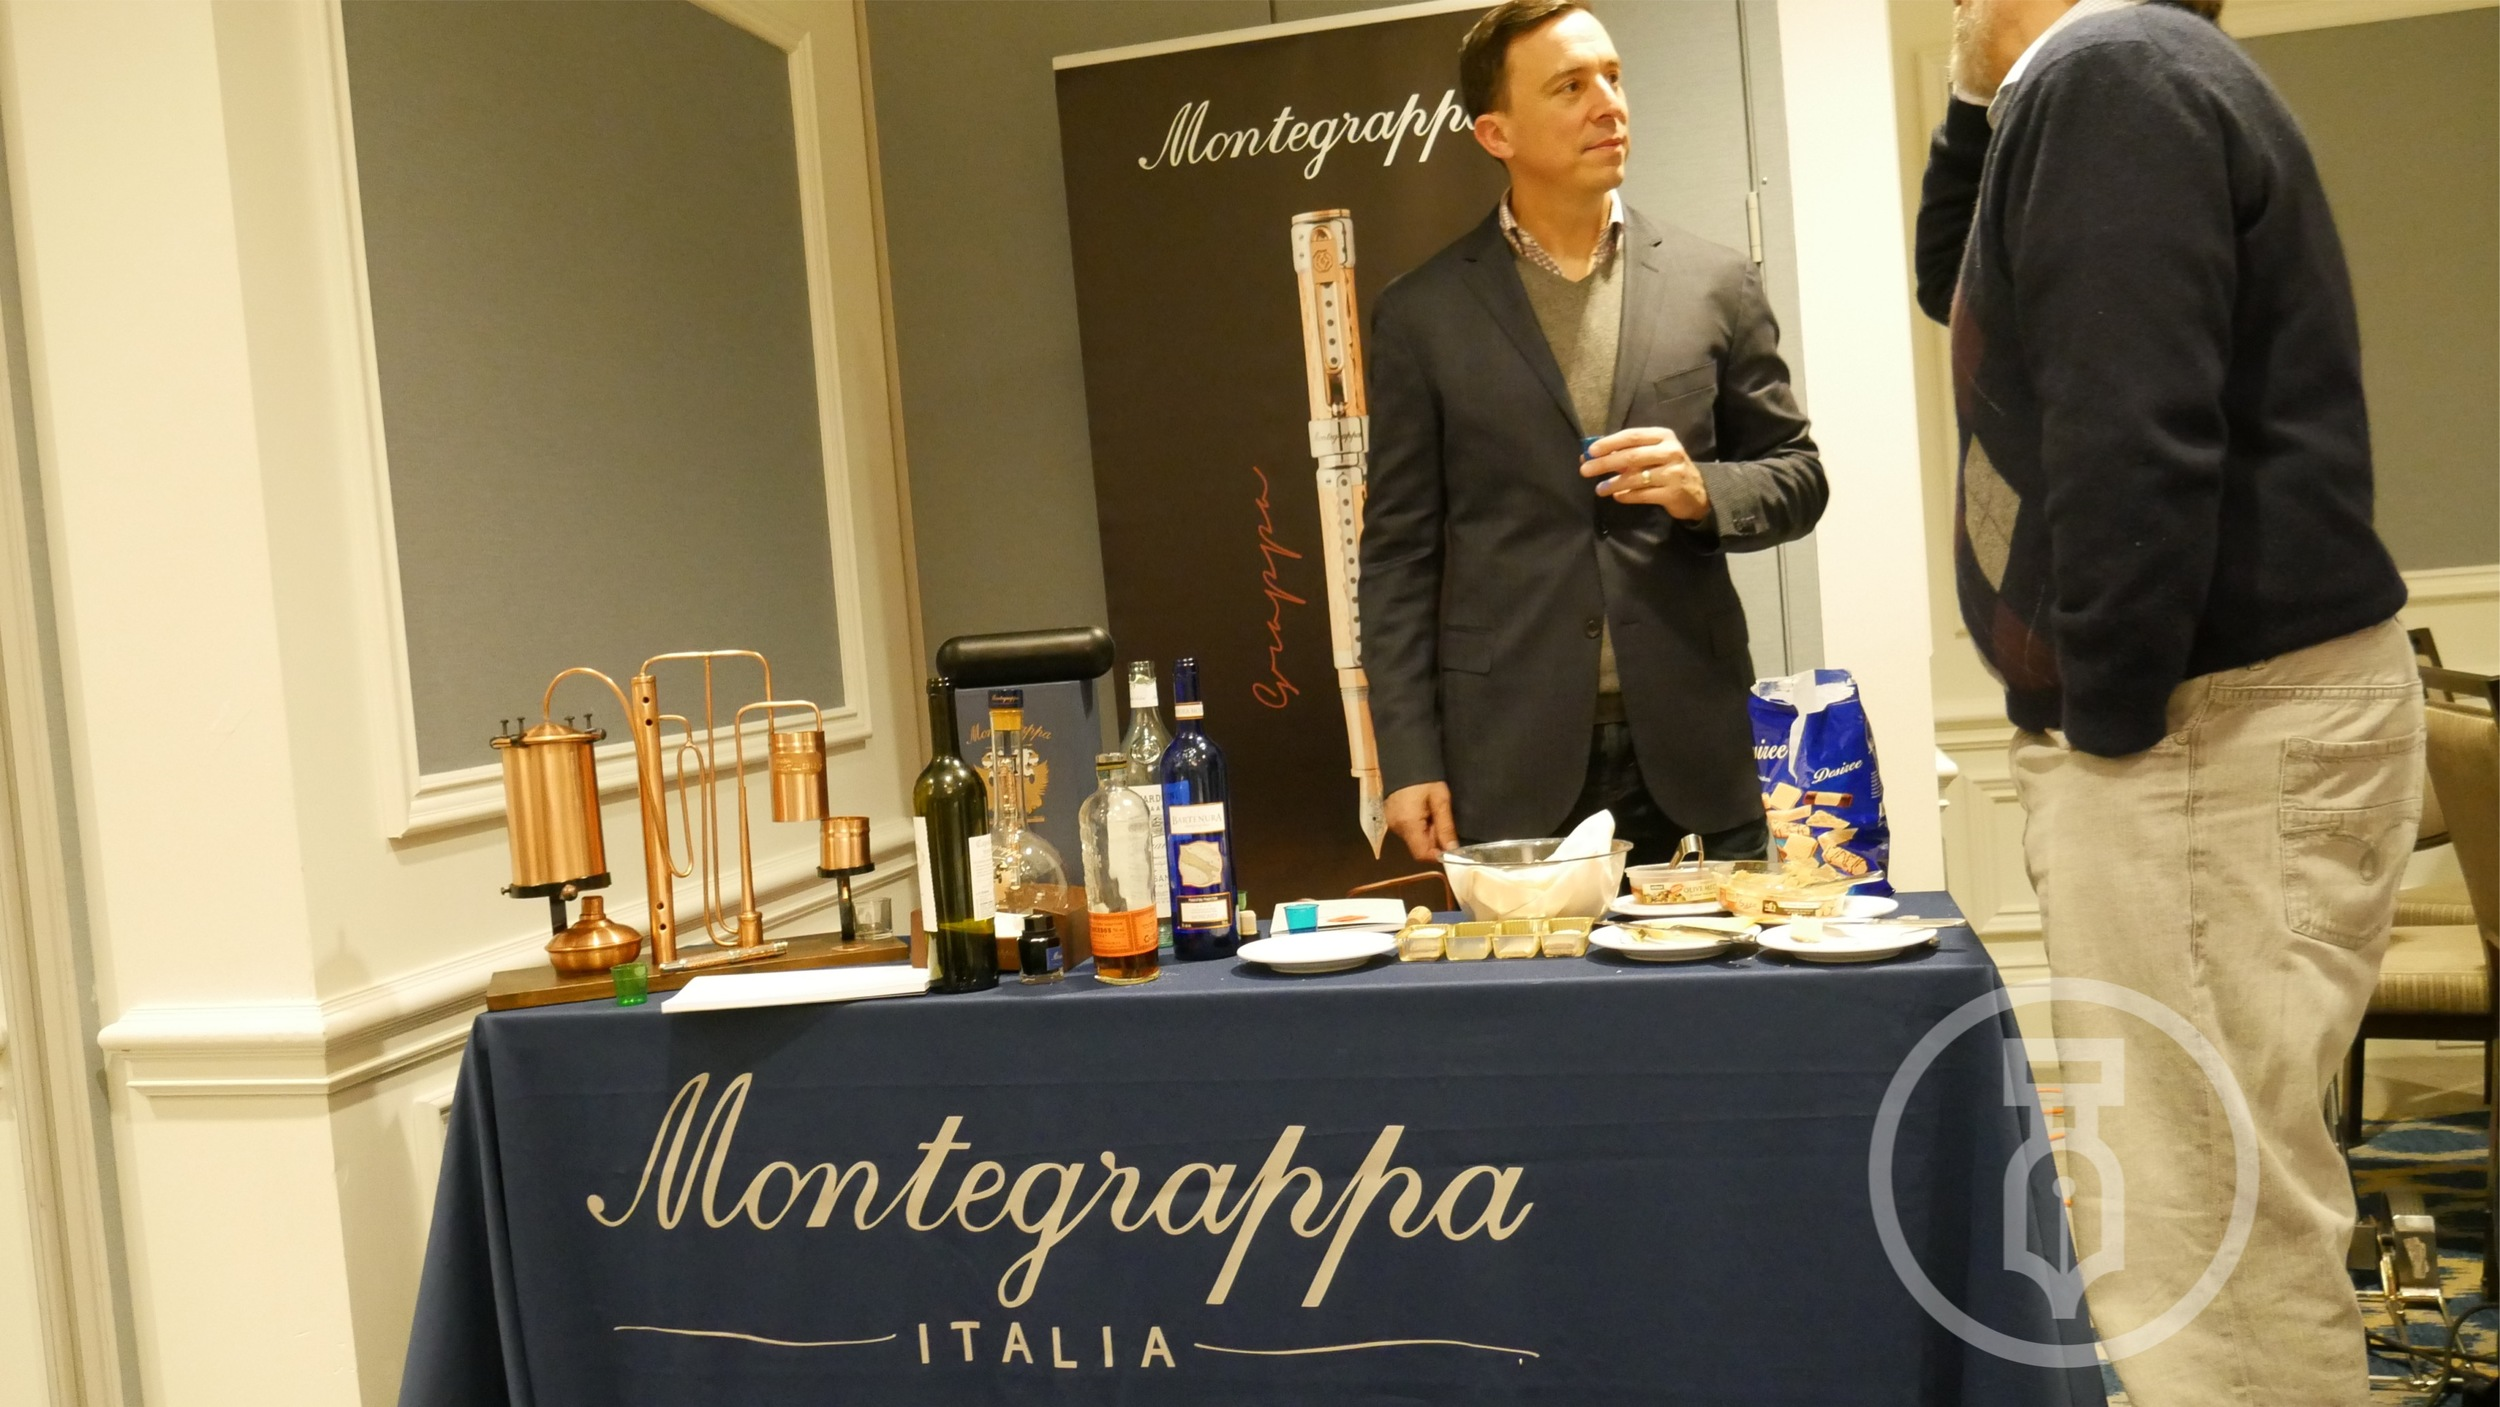 Bryan Hulser of Kenro who brought the entire Grappa setup for everyone to see up close